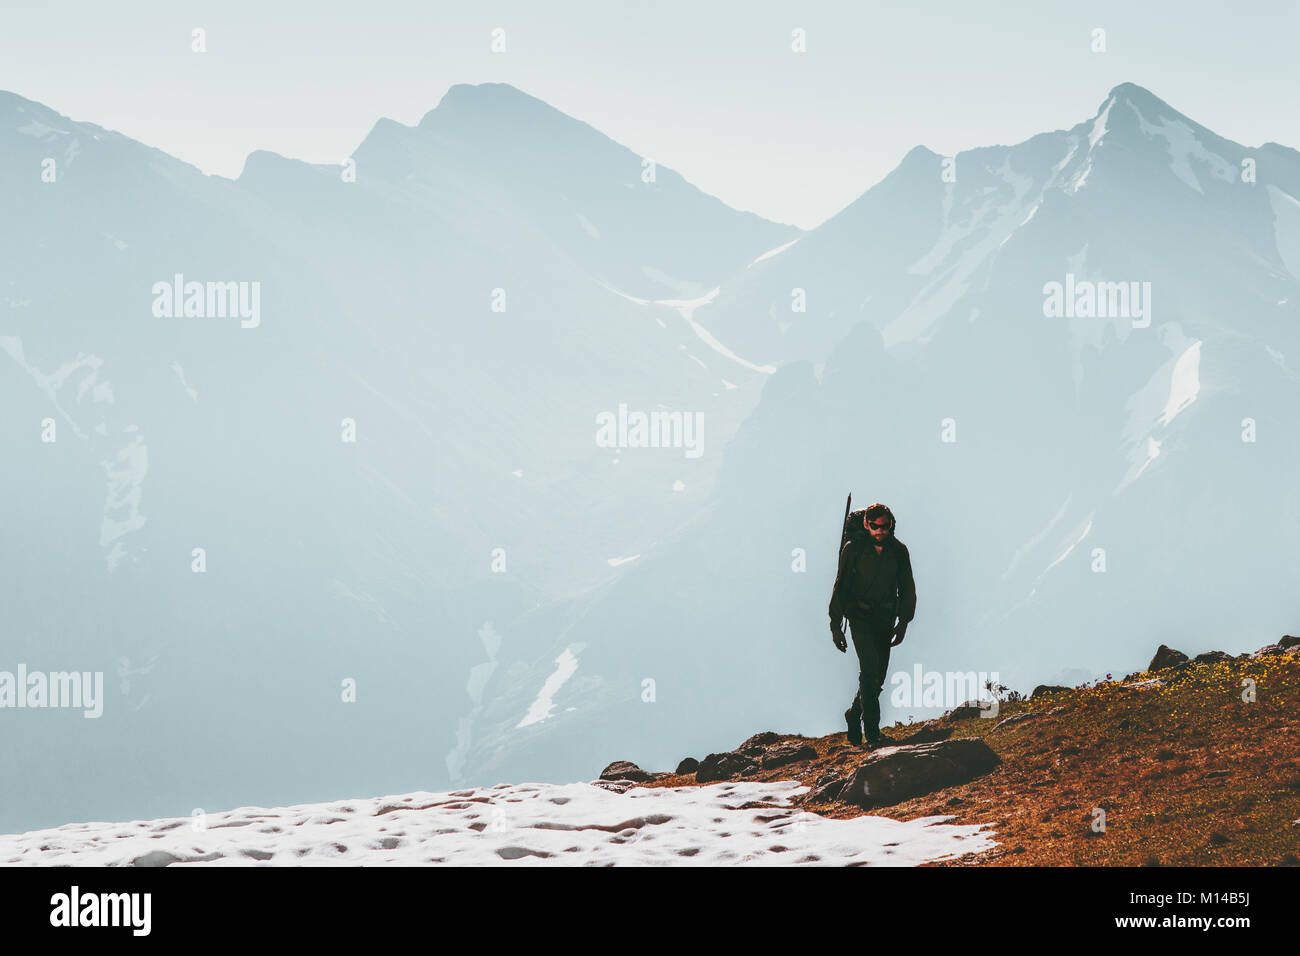 Active Man hiking alone in mountains Lifestyle travel survival concept adventure outdoor active vacations climbing - Stock Image